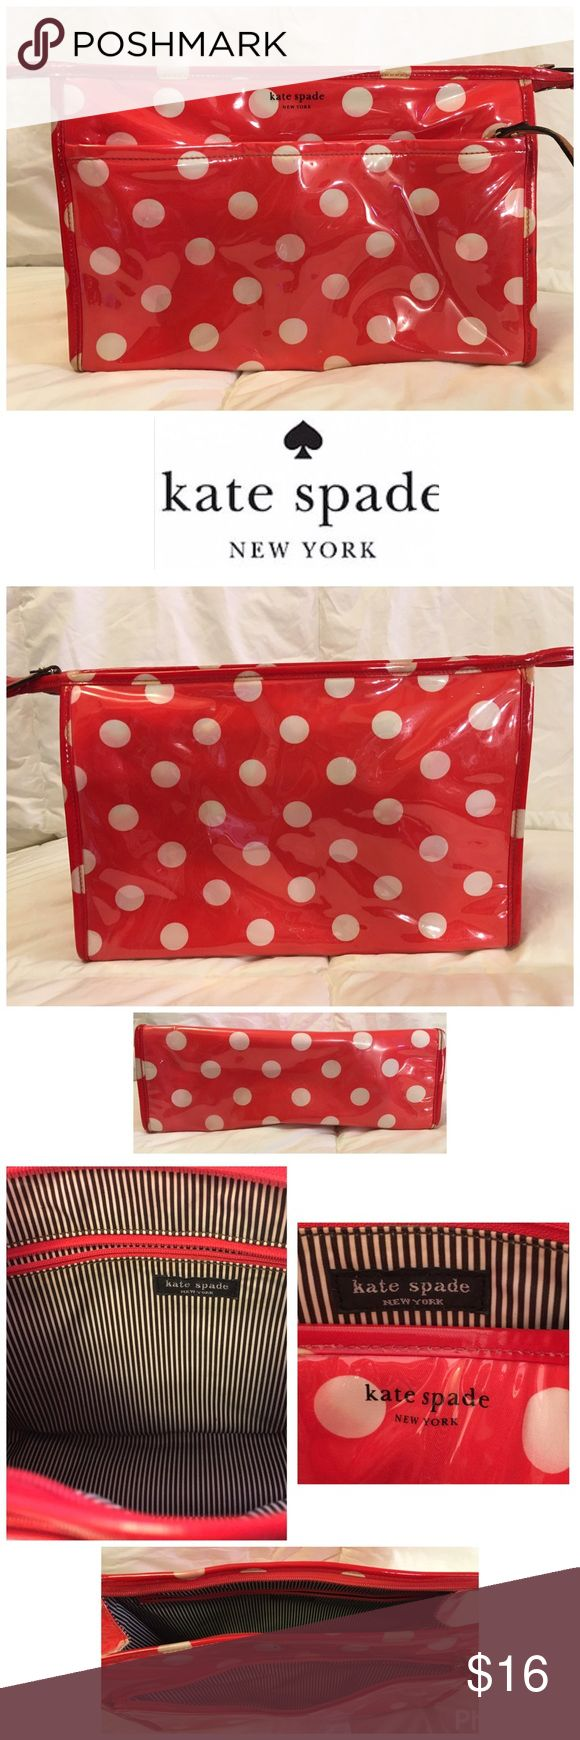 Kate Spade ♠️ Polk a Dot Large Makeup Bag 7X12 Kate Spade ♠️ Polk a Dot Large Makeup Bag 7X12 tiny stain see4th Photo kate spade Bags Cosmetic Bags & Cases